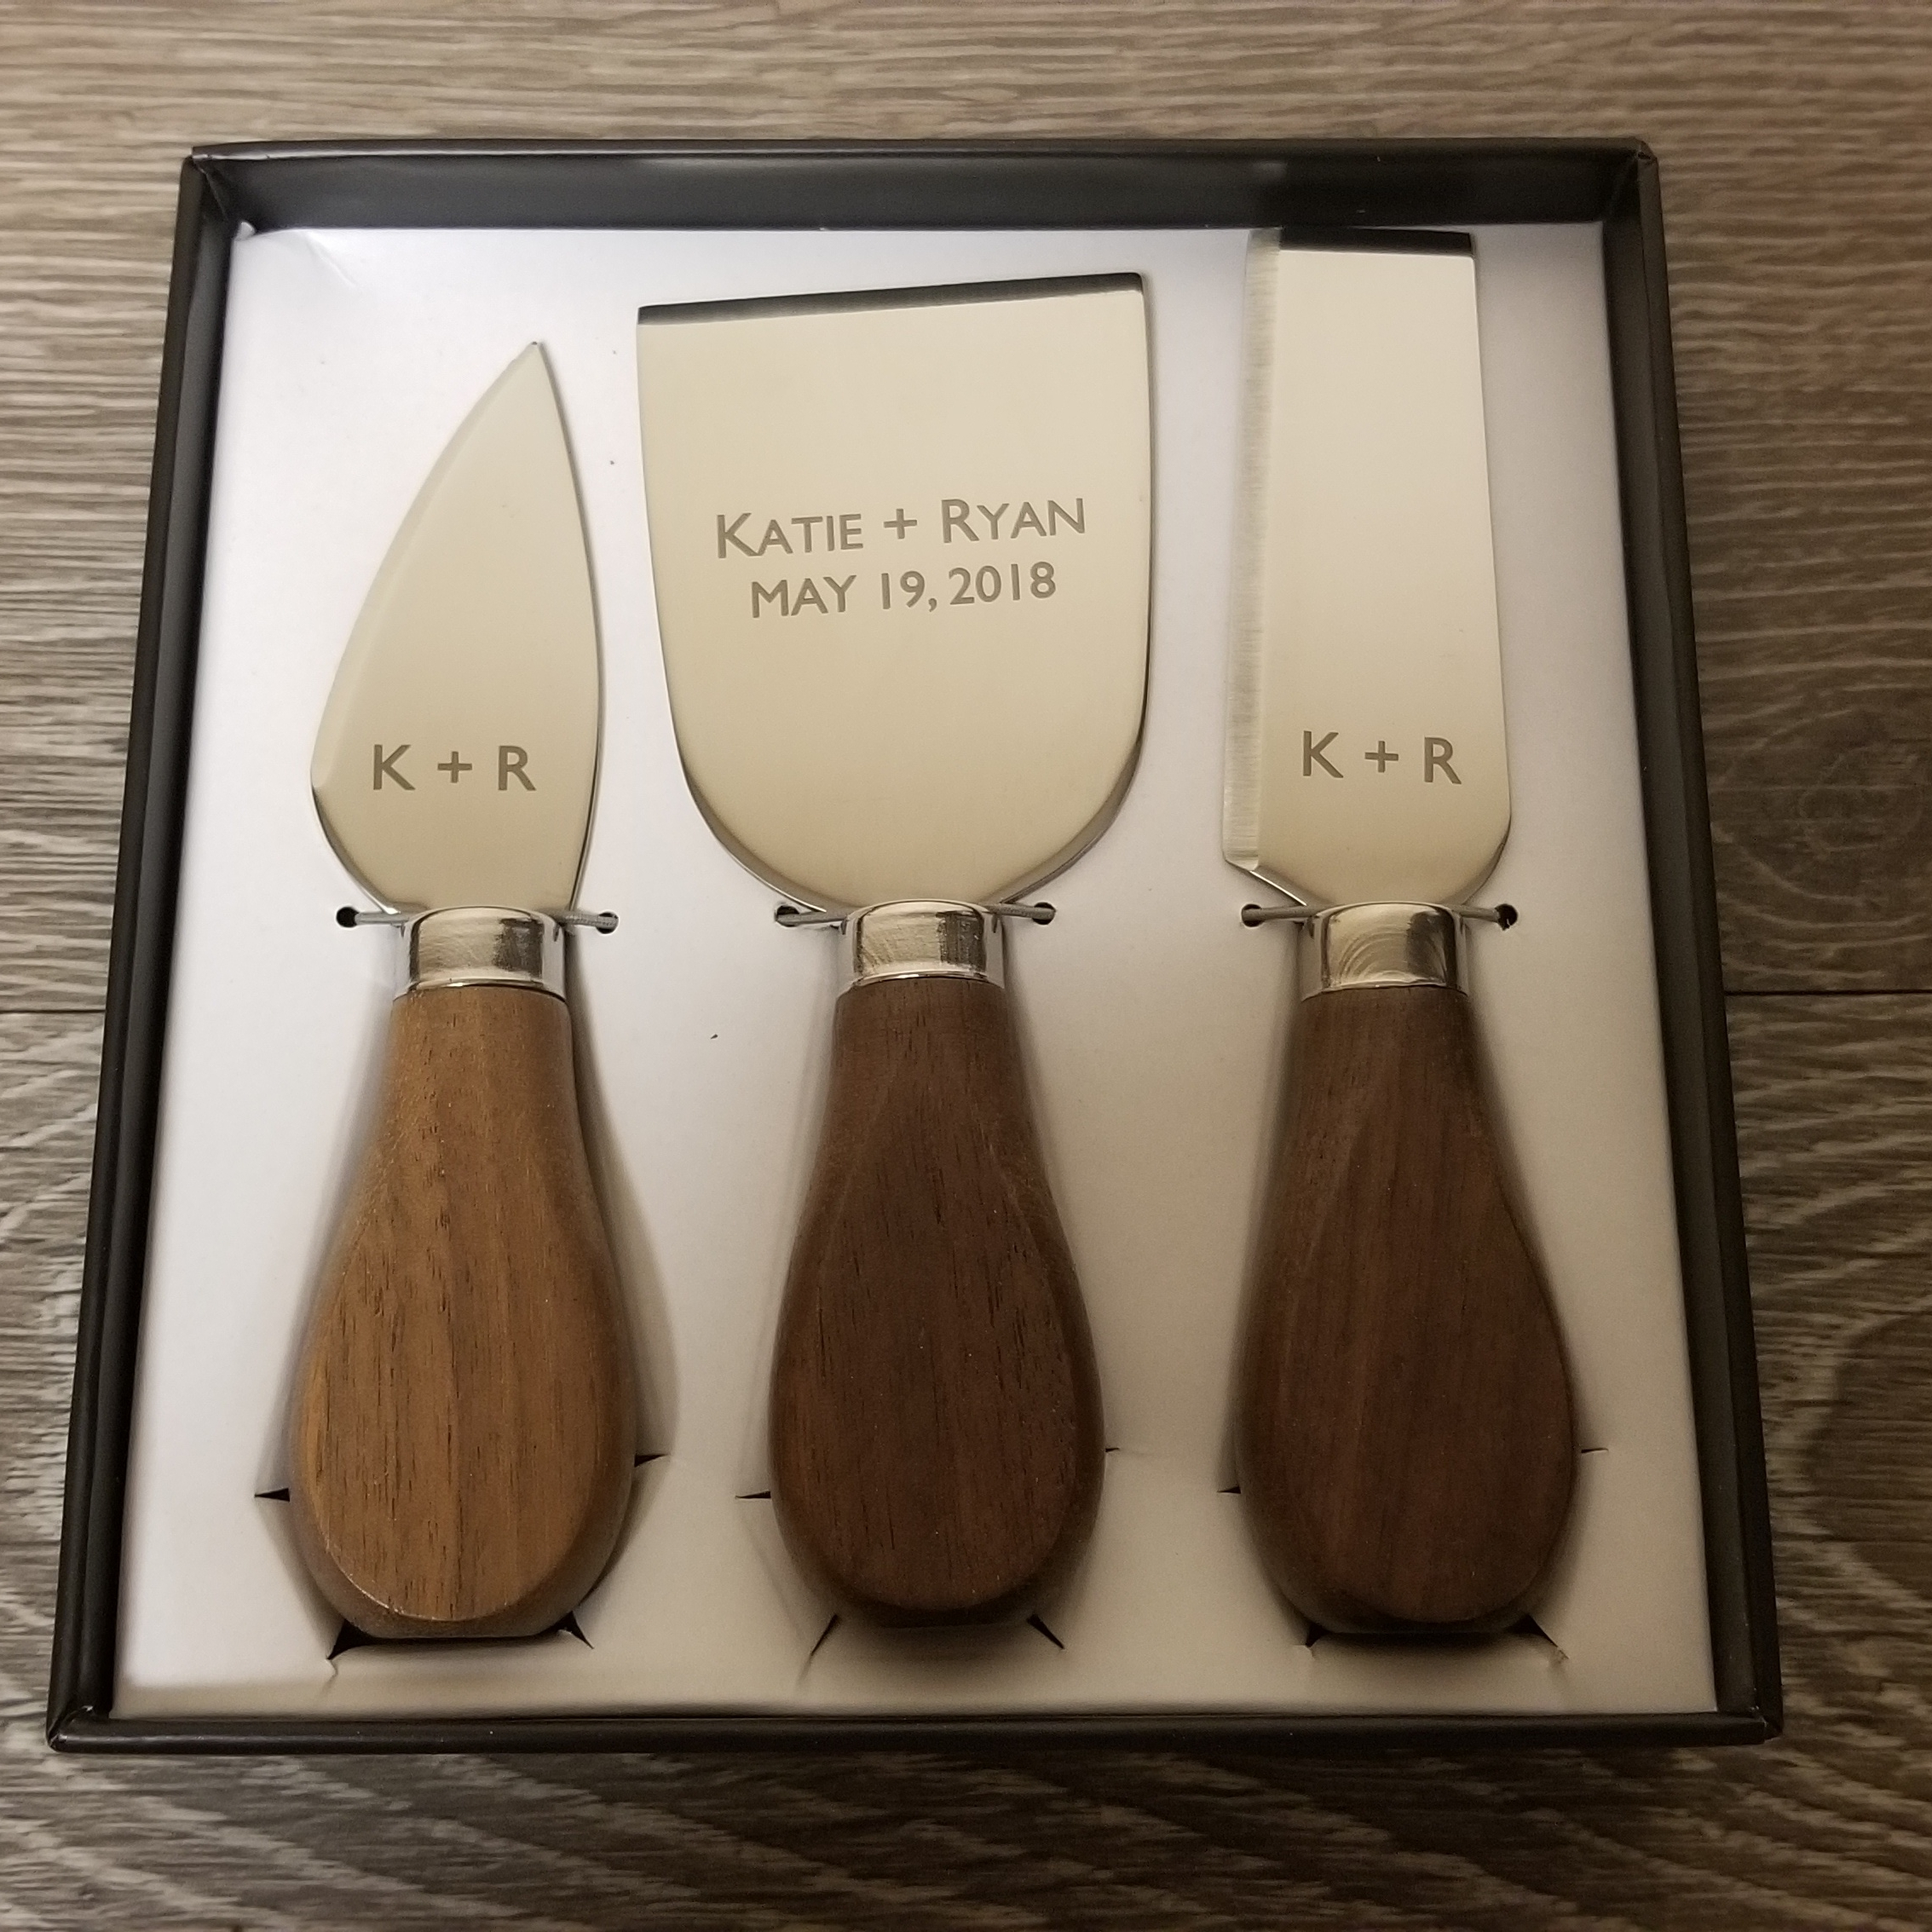 Copy of Engraved Cheese Set - Personalized Cheese Set - Engraved Cheese Knife - Personalized Cheese Knife - Custom Gift - Personalized Gift - Engrave It Houston